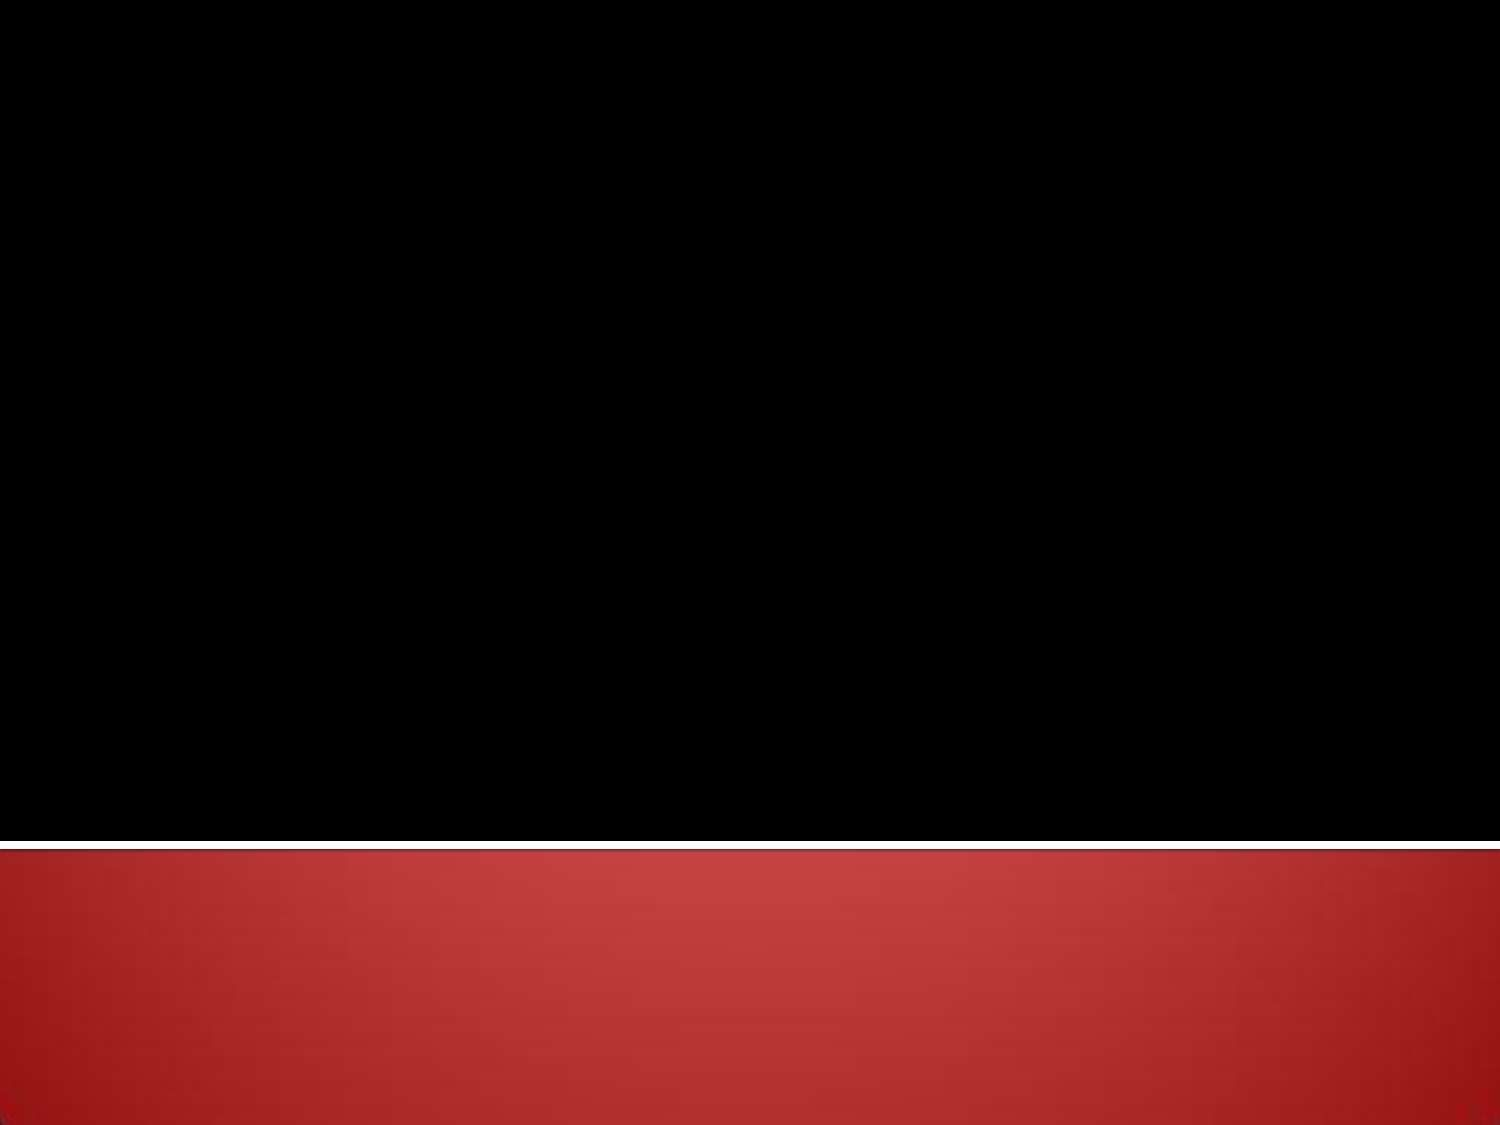 Red Bottom Edge On Black Background PowerPoint #821